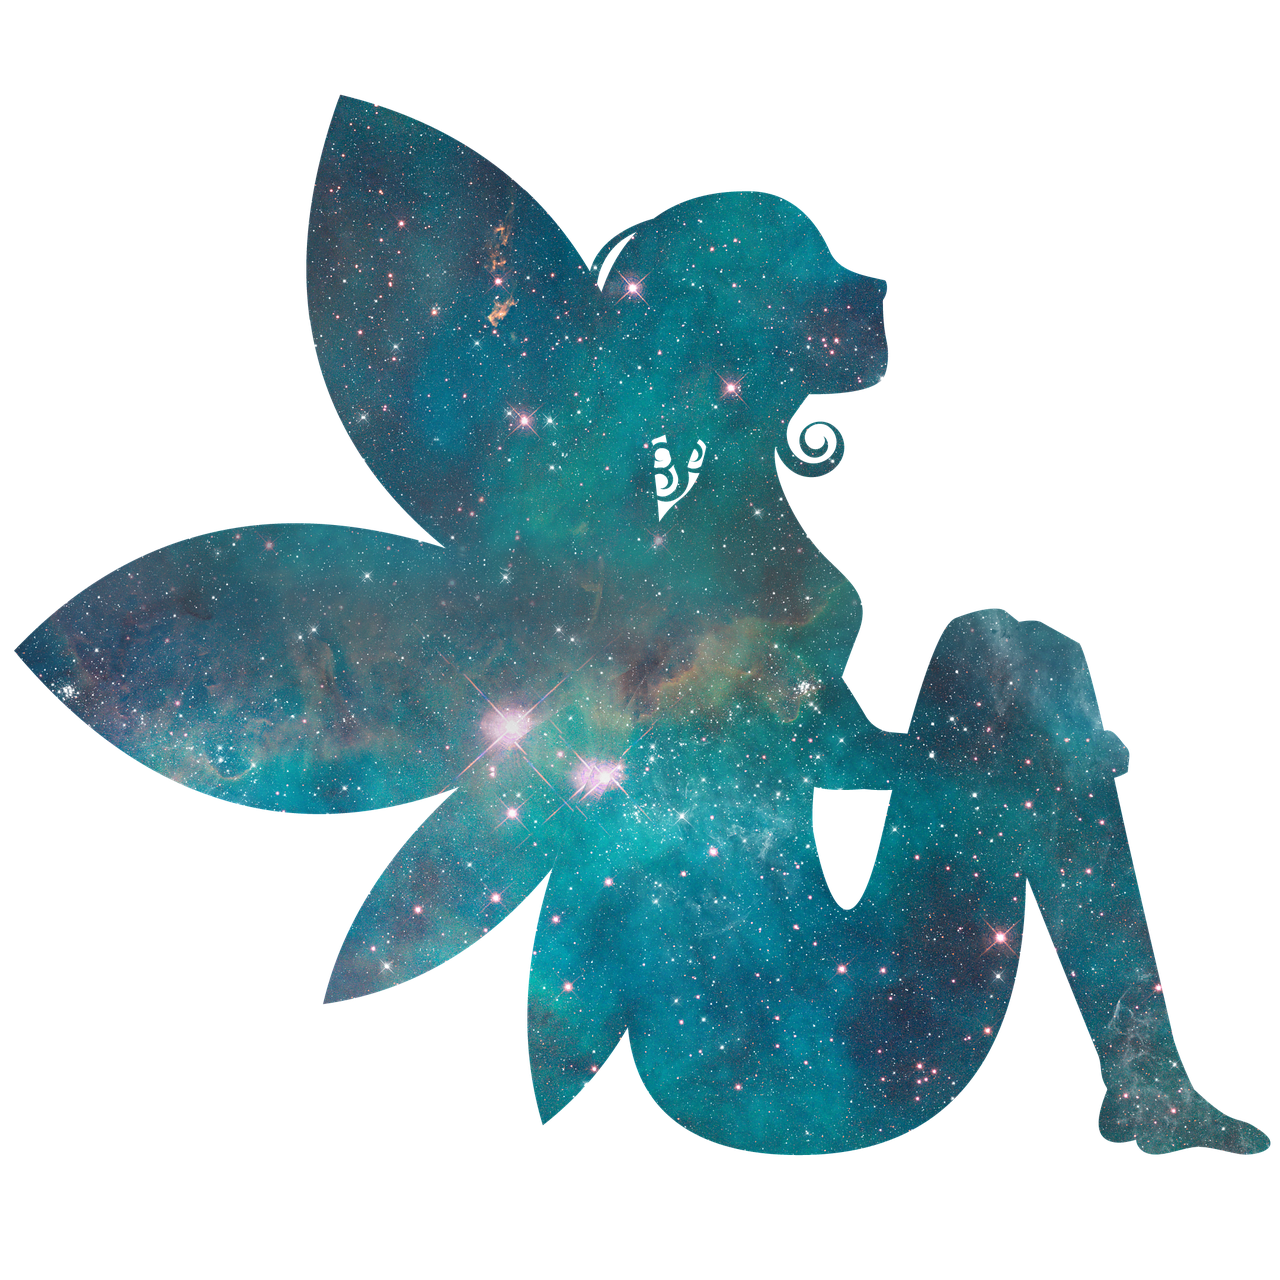 fairy-2164638_1280.png